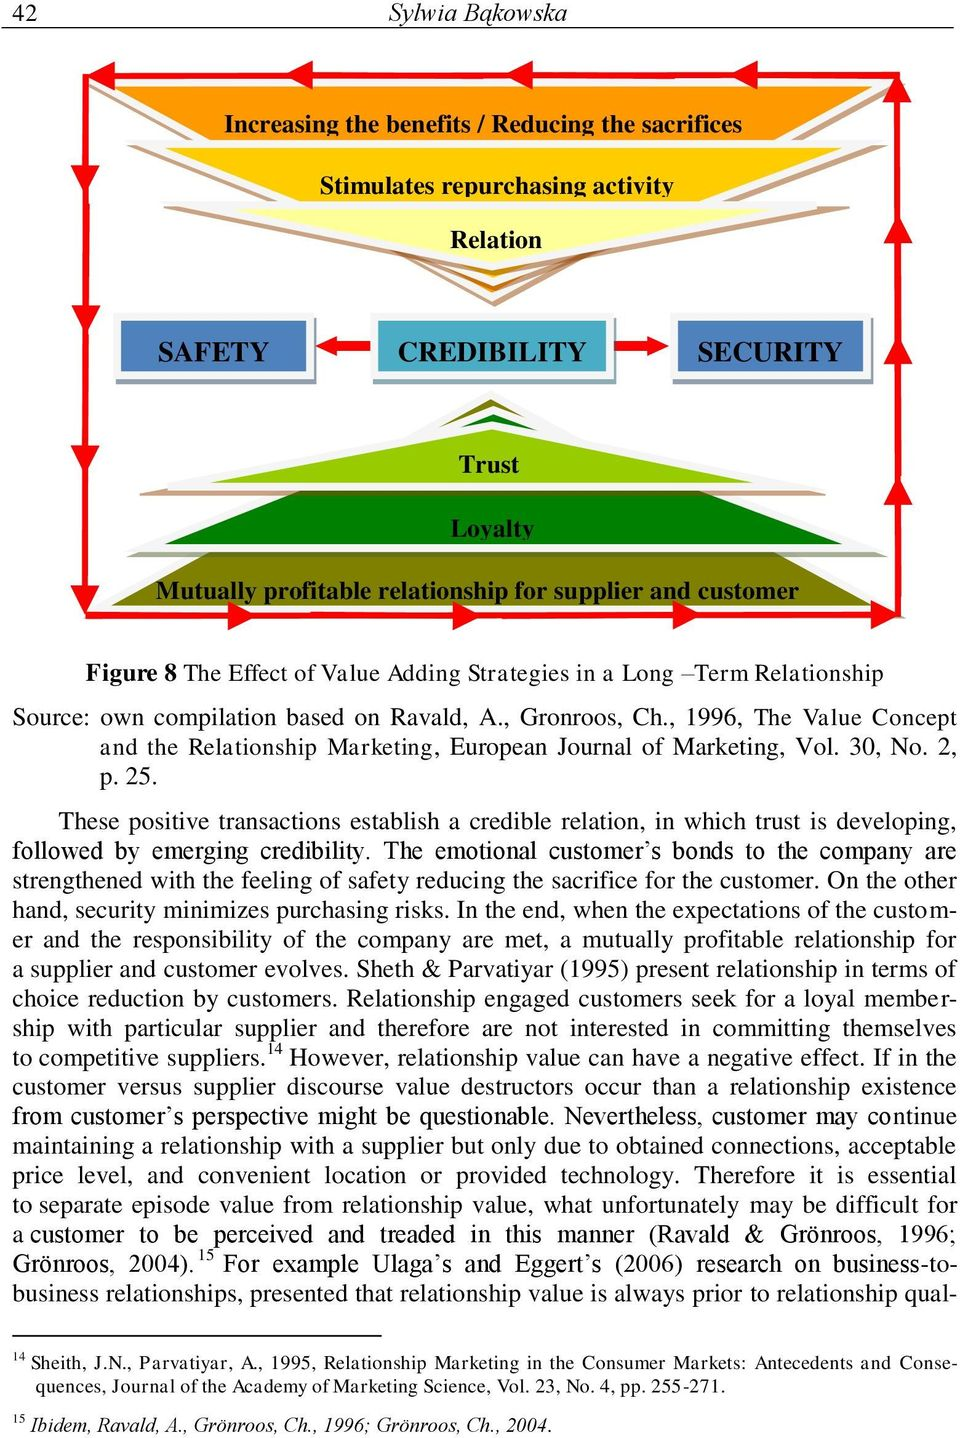 , 1996, The Value Concept and the Relationship Marketing, European Journal of Marketing, Vol. 30, No. 2, p. 25.